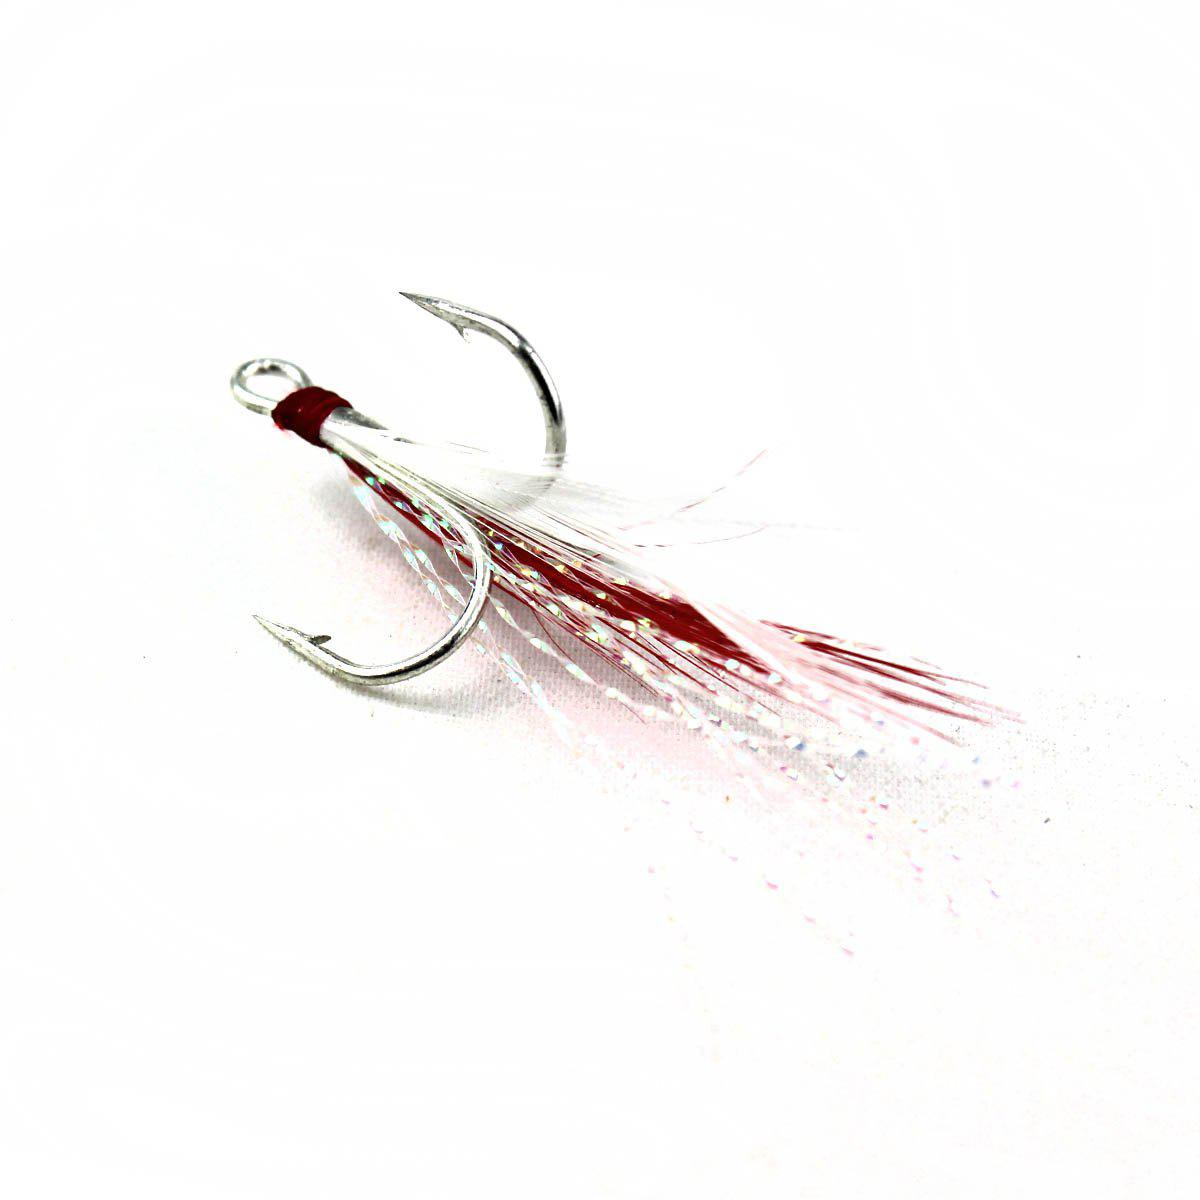 No. 4 Feather Hook with Three Fishing Barb